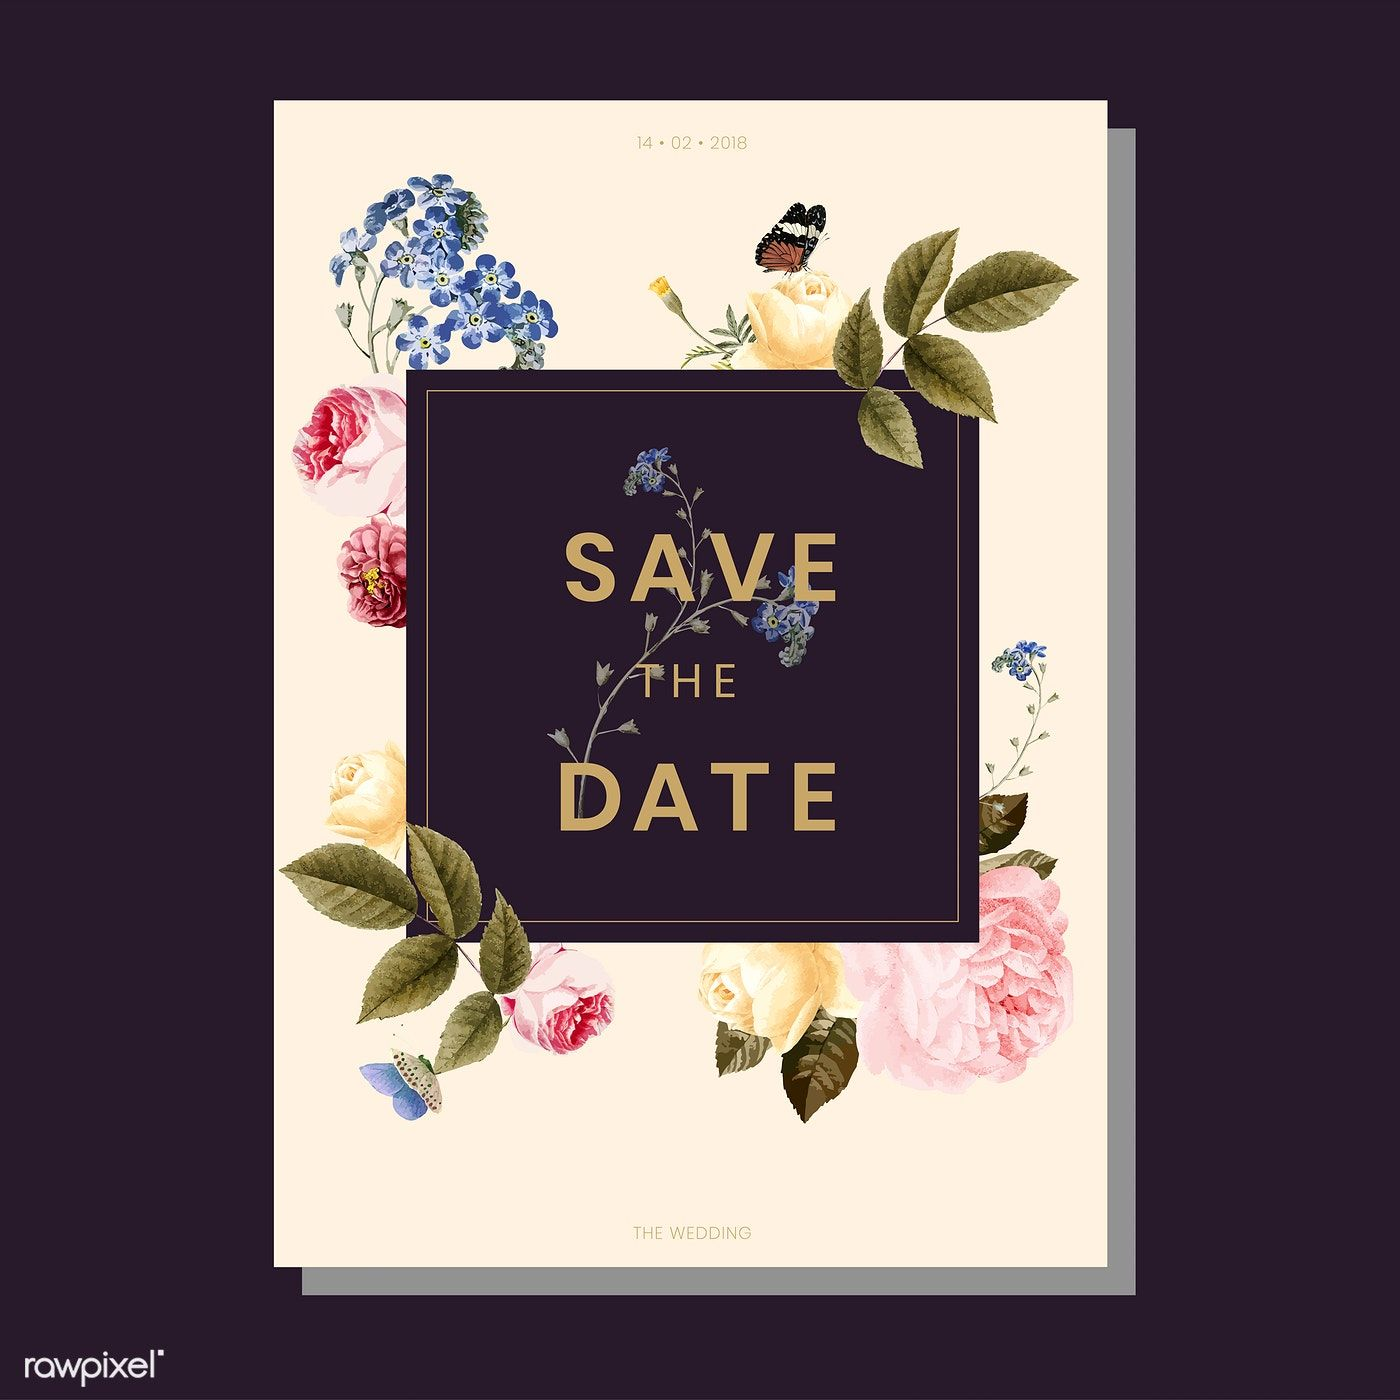 Download premium vector of Save the date wedding